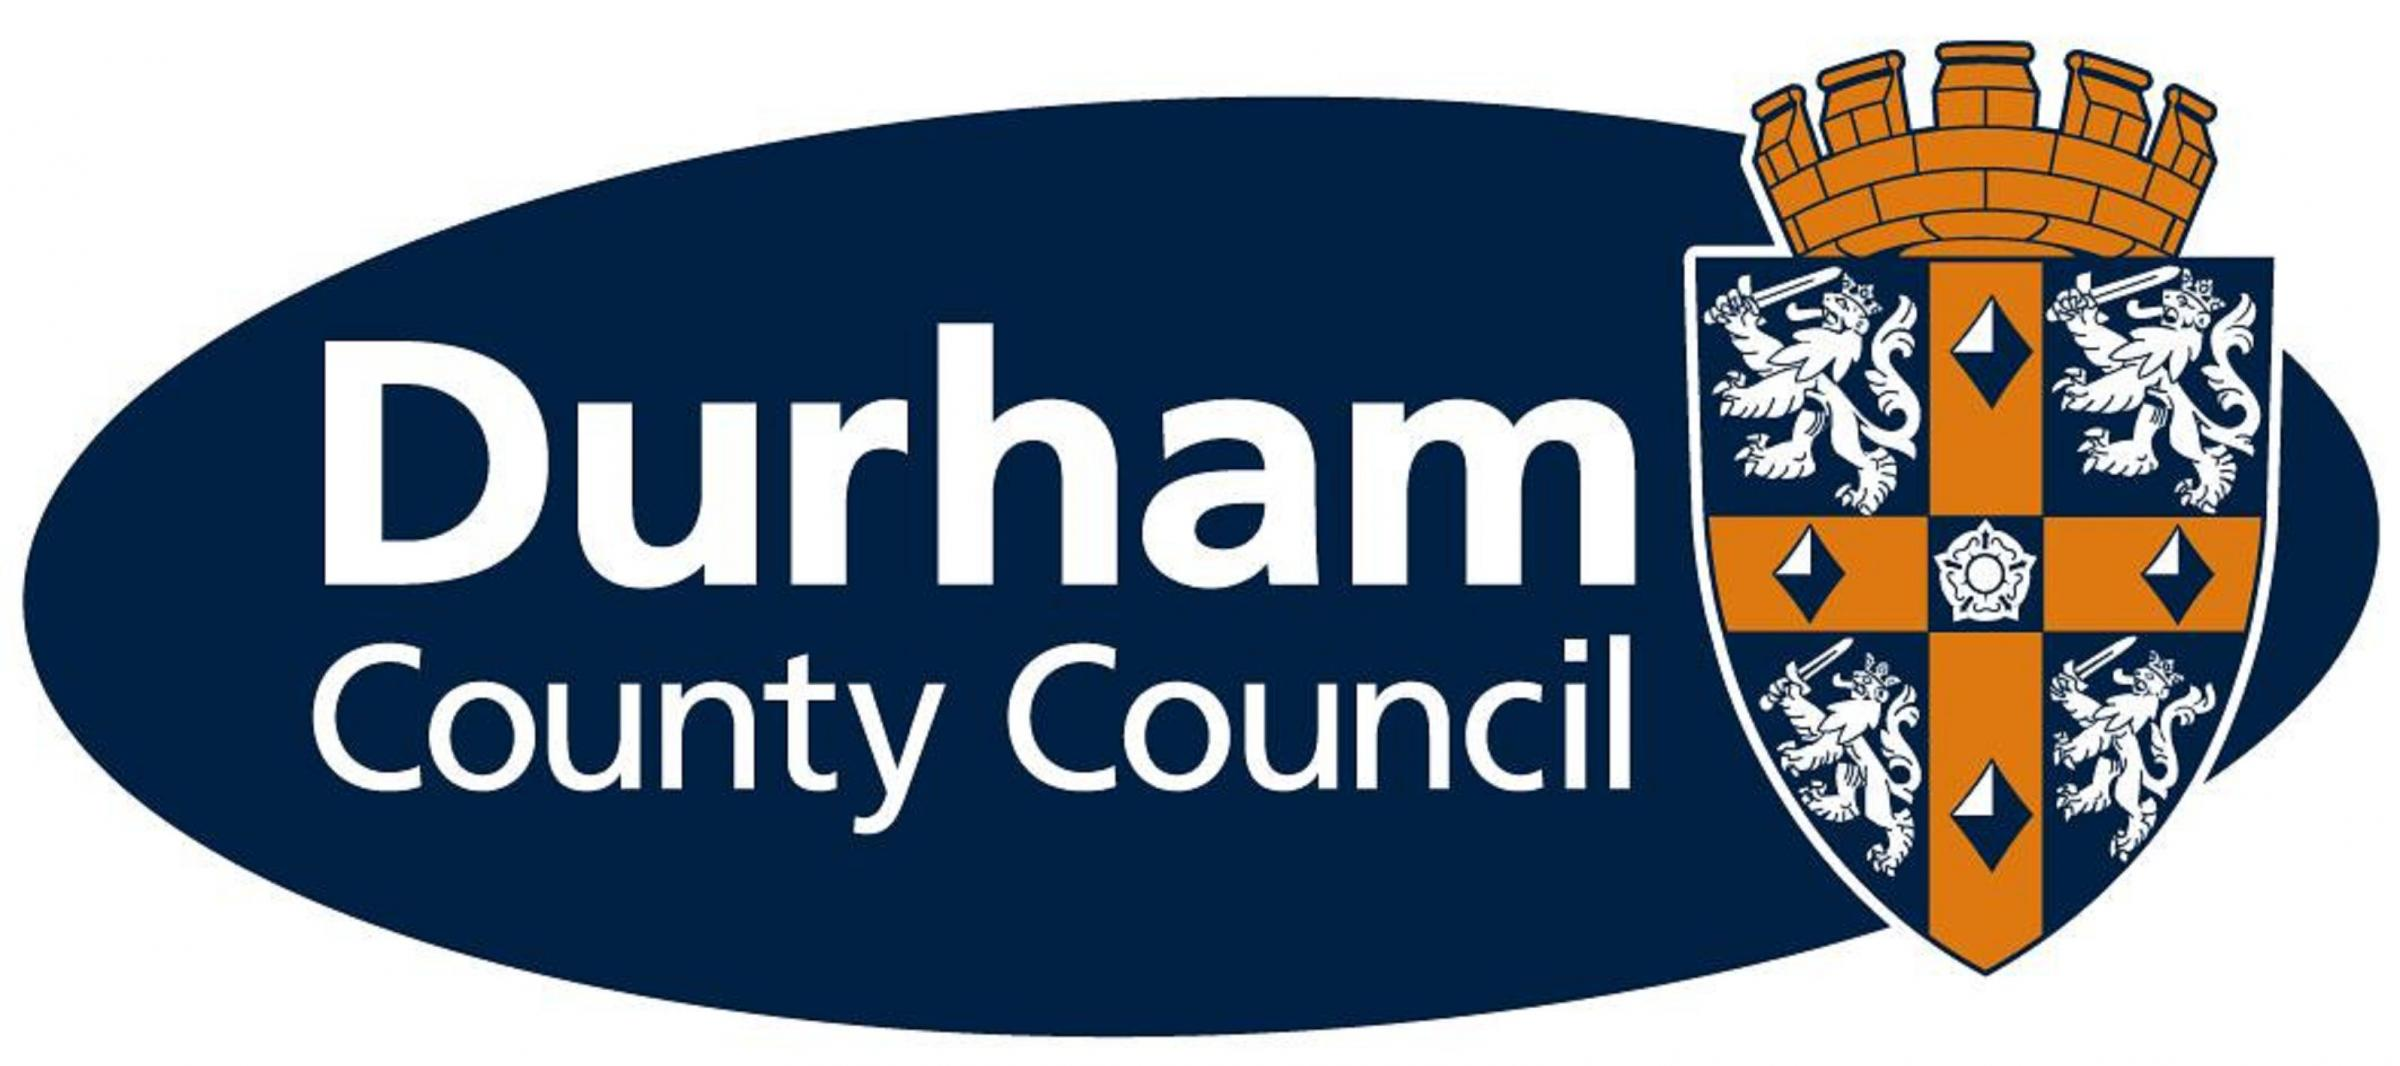 CCTV trial to stop illegal parking in Durham